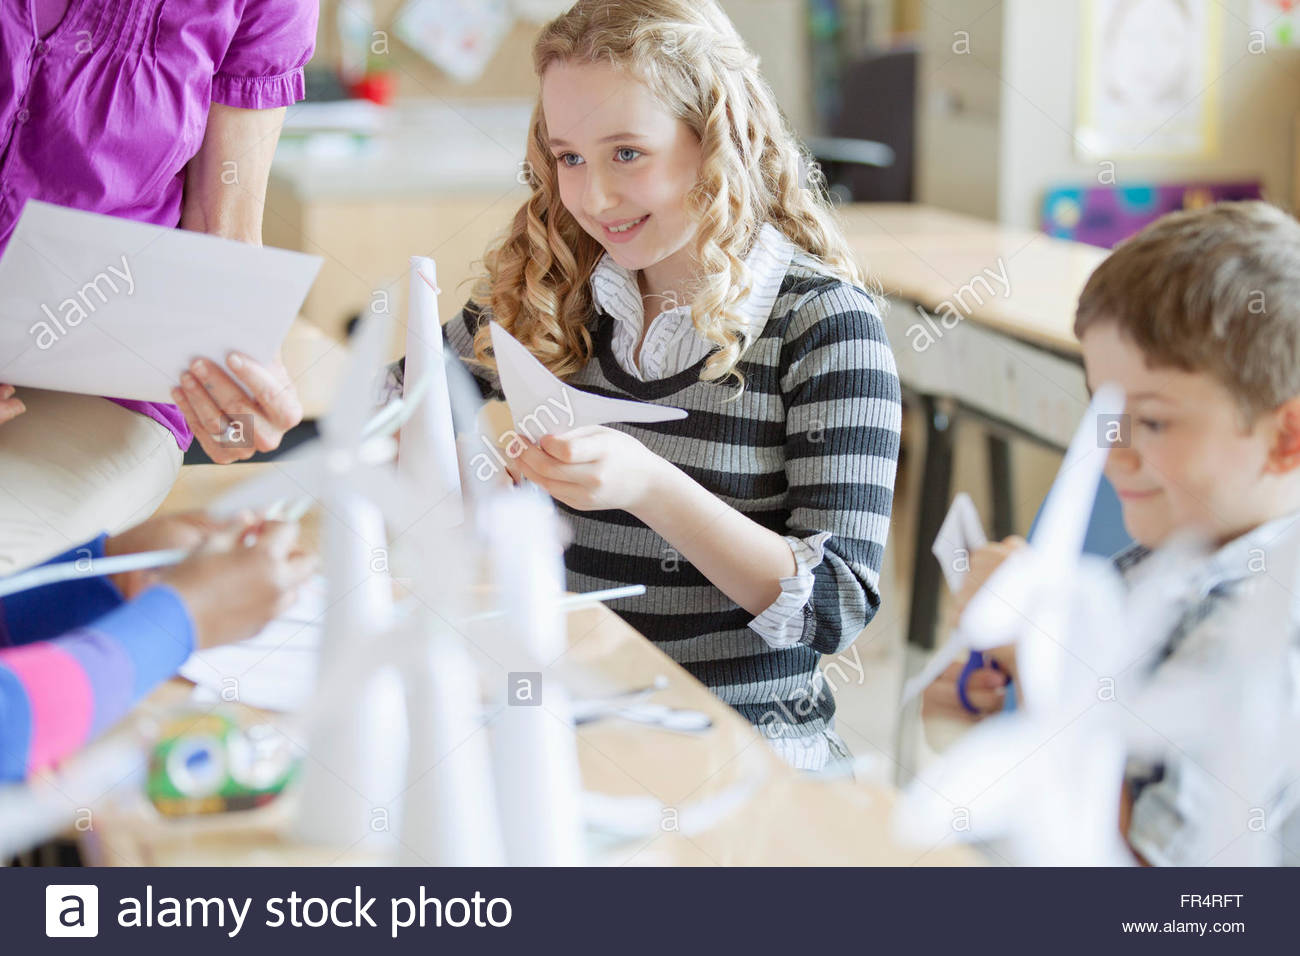 elementary students creating wind turbine models - Stock Image